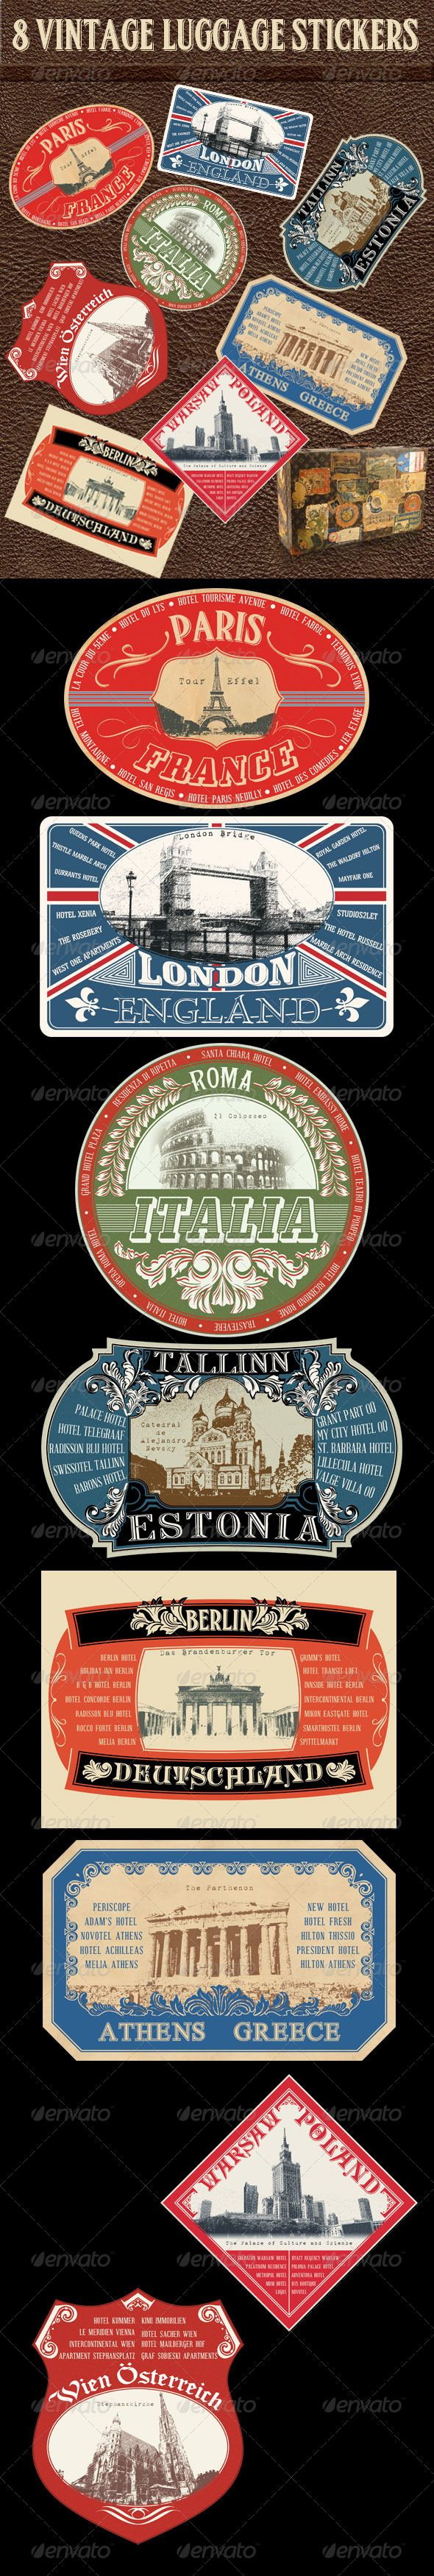 8 Vintage Luggage Stickers #GraphicRiver This is a collection of 8 professional designed Vintage luggage stickers for any tourism, vacation, travel web site and print. All Photoshop files are easily layered and editable. They are all in high resolution